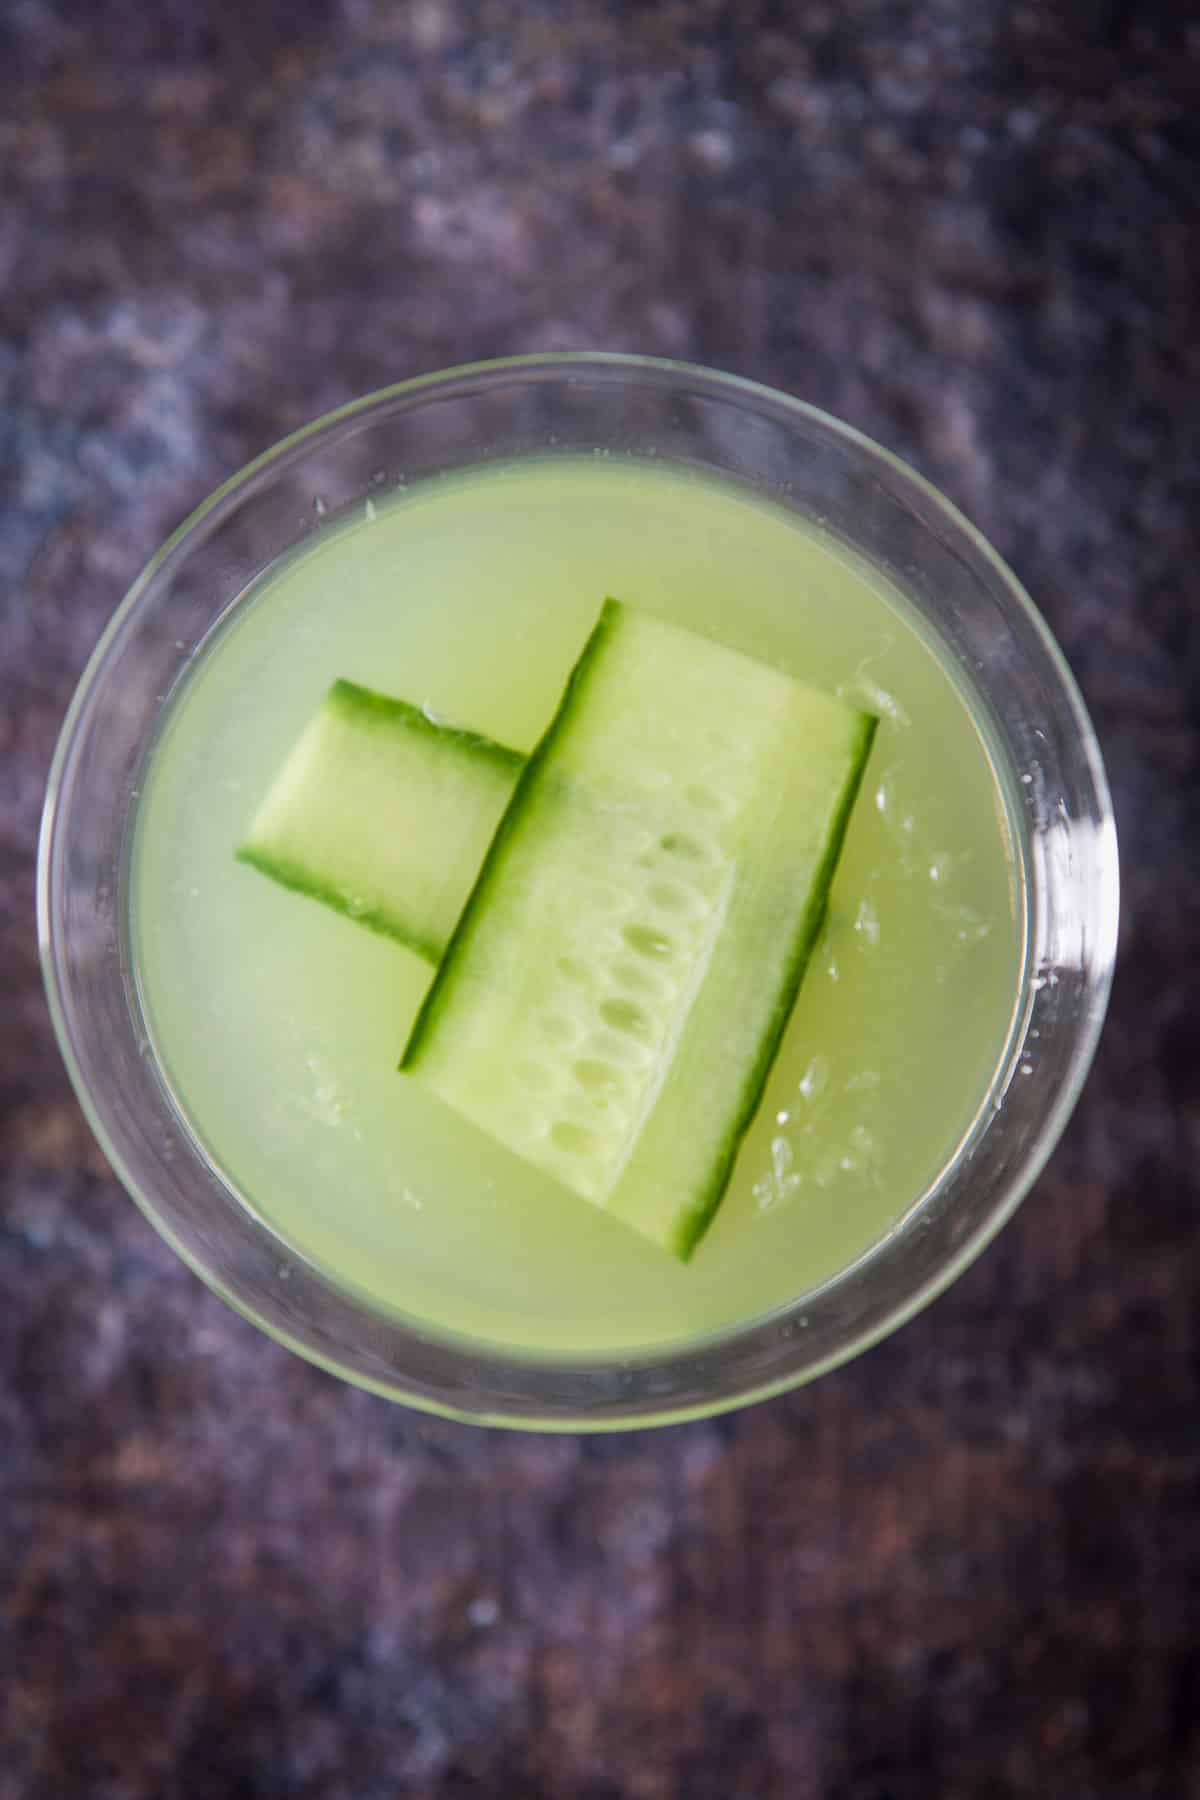 Overhead view of a green cocktail in a martini glass with two strips of cucumber floating